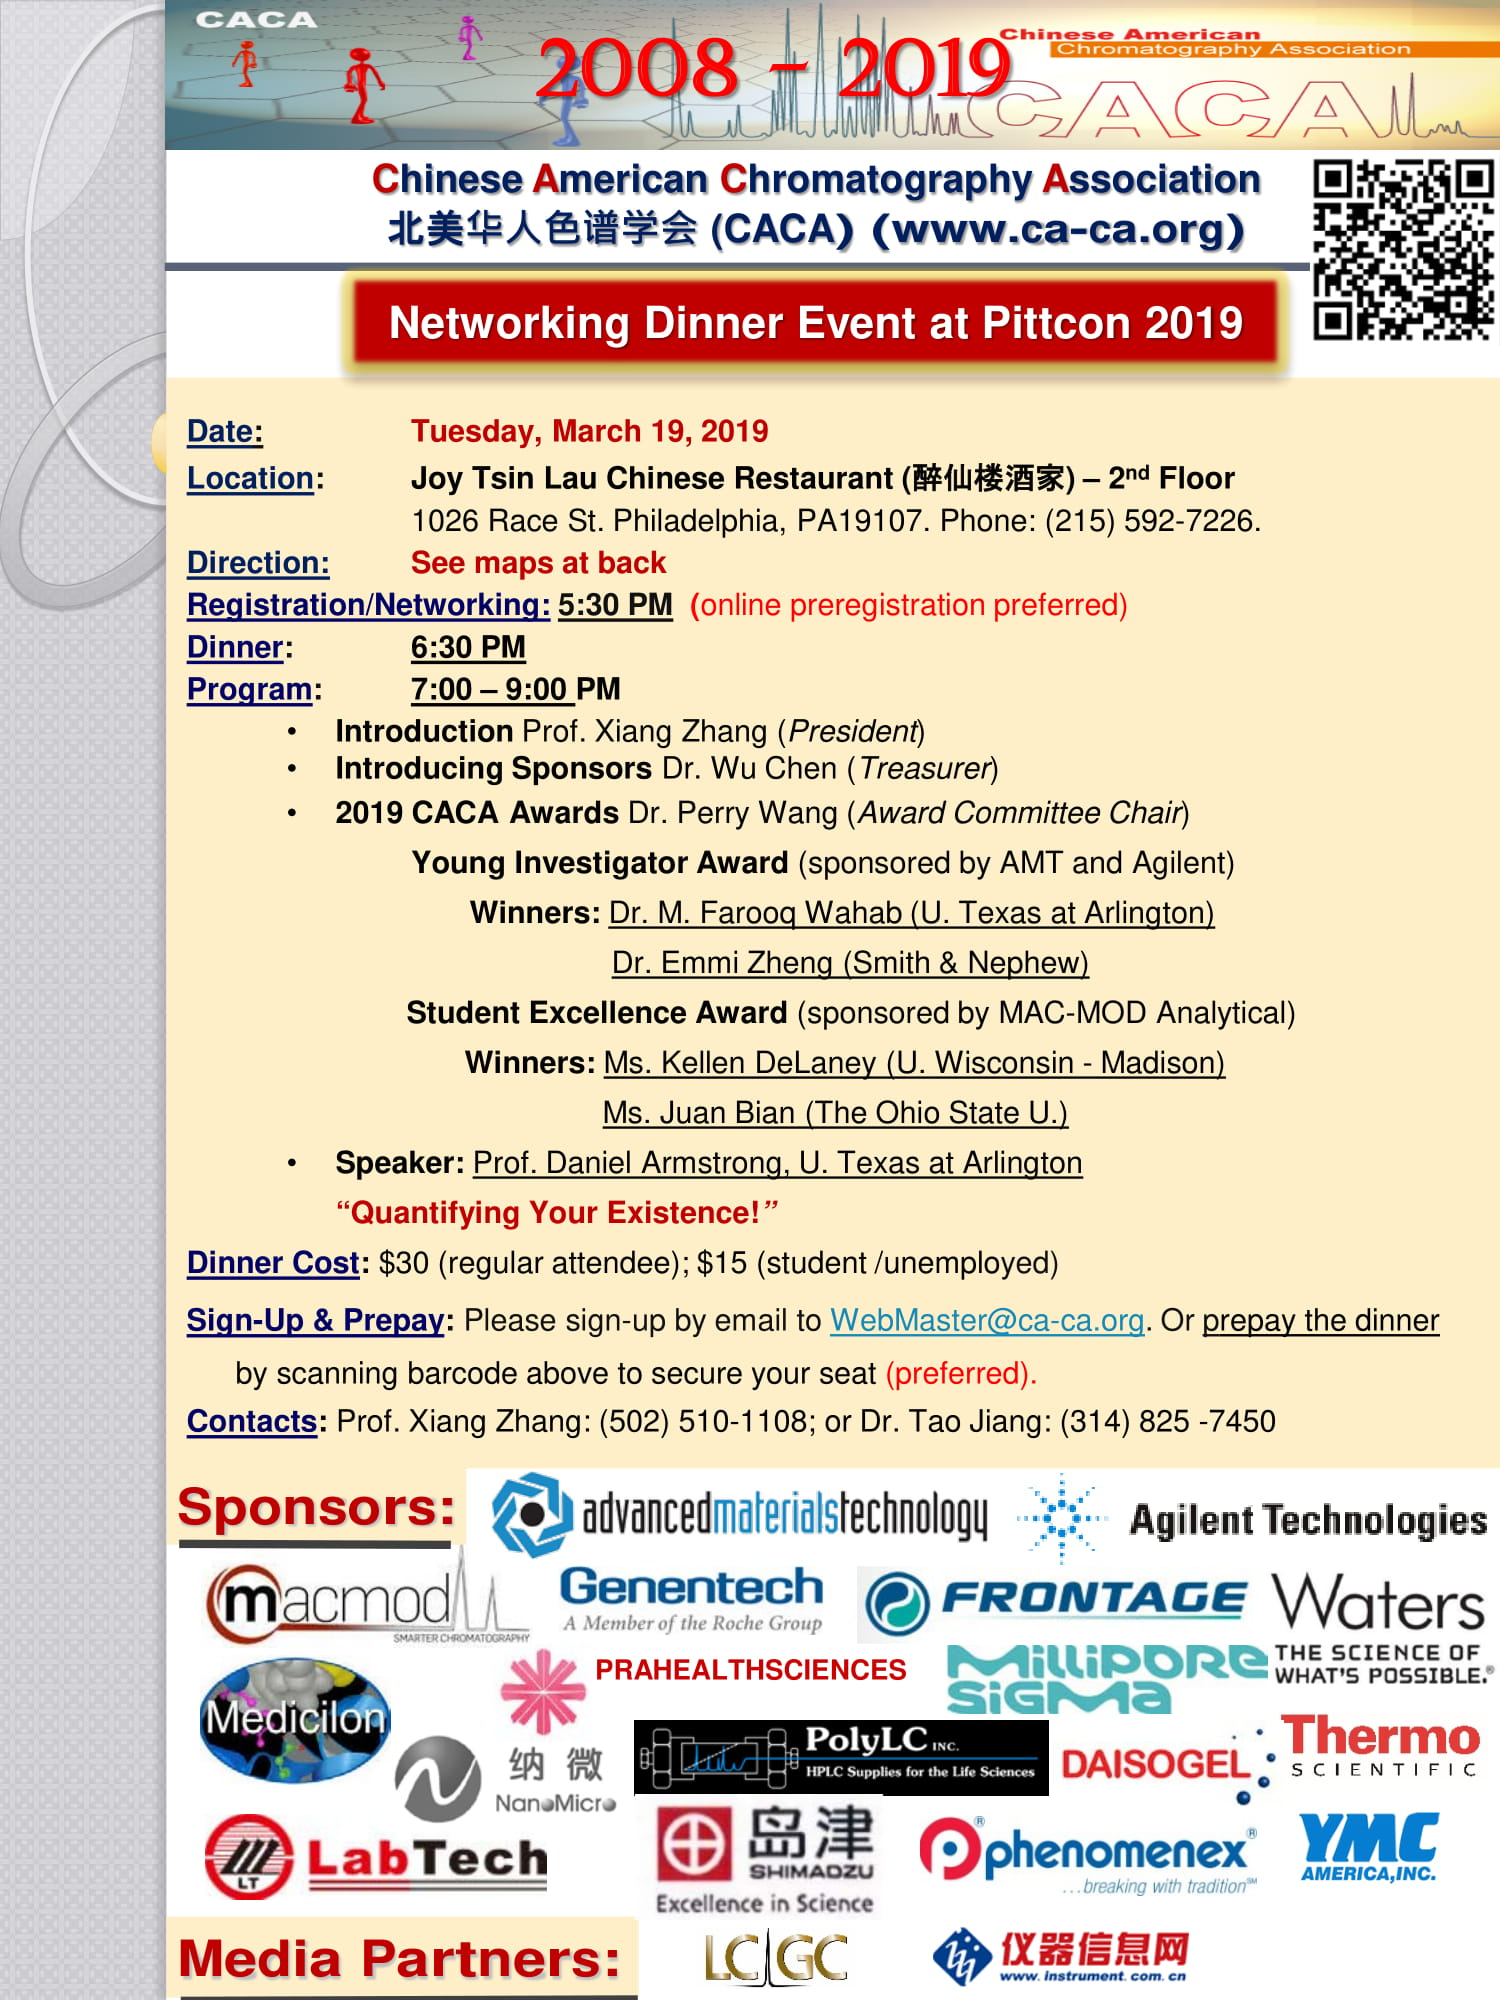 CACA Dinner Event Program 2019 Philly 1